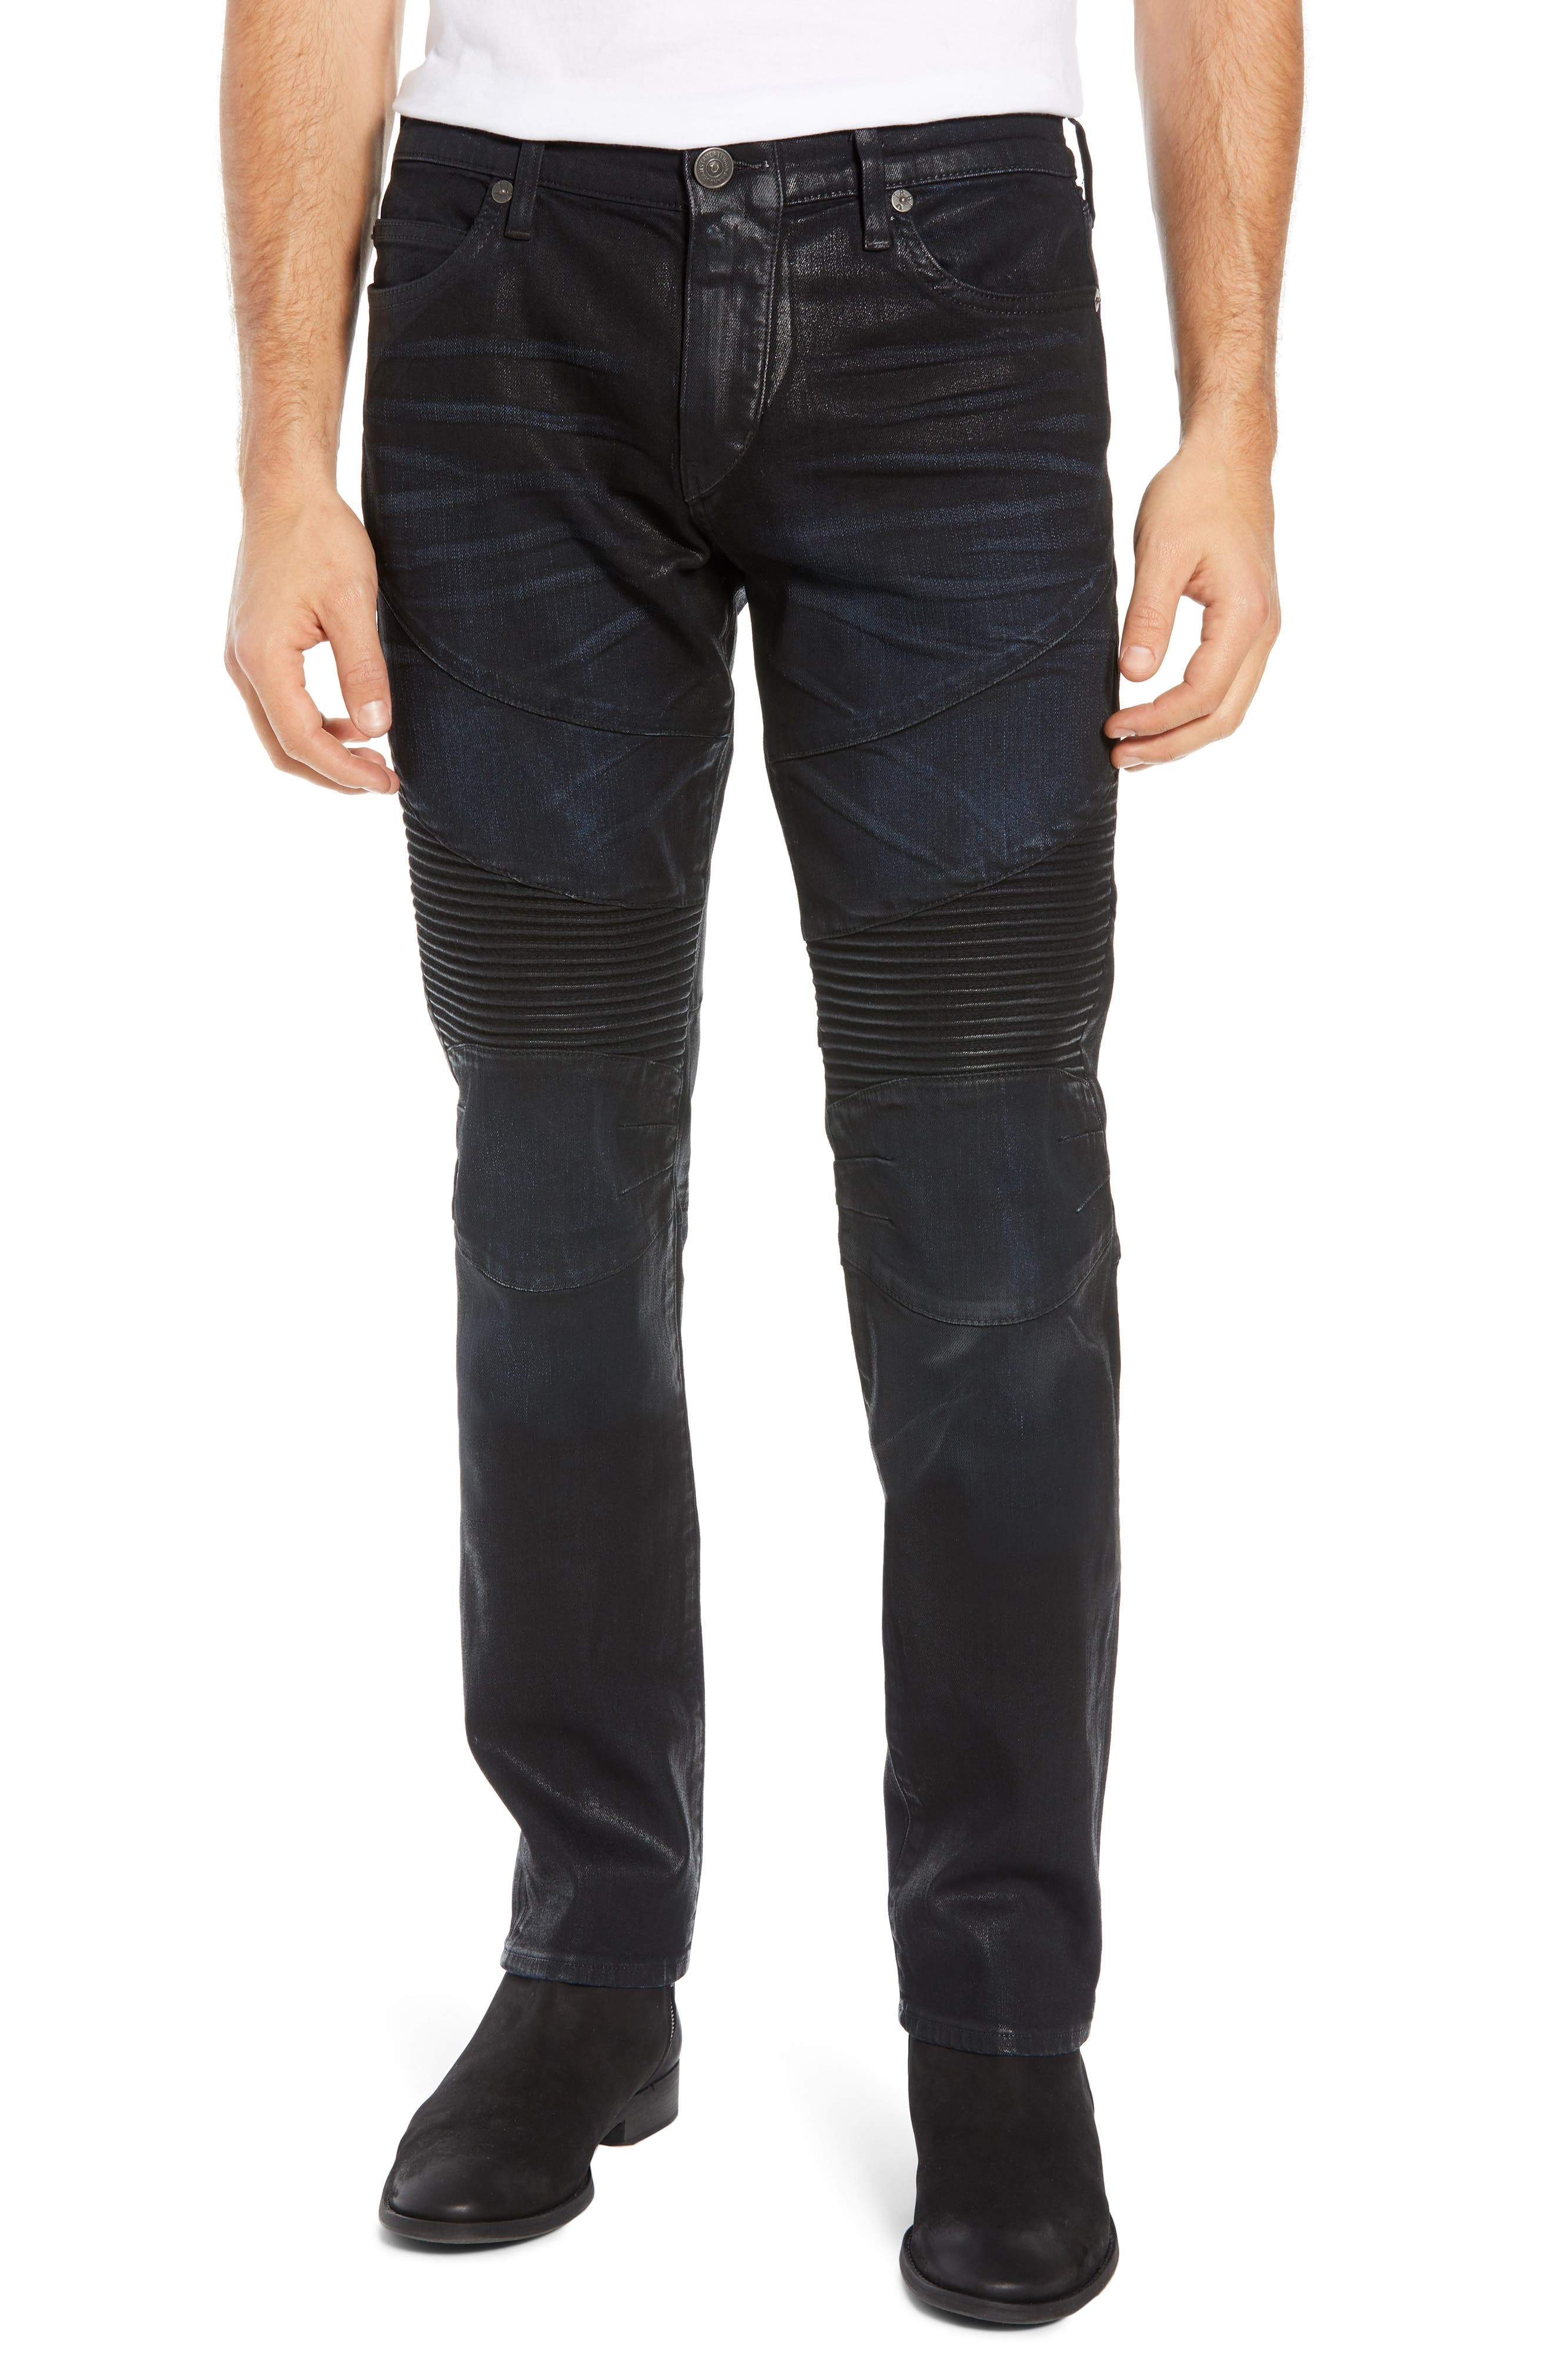 Rocco Skinny Fit Moto Jeans,                             Main thumbnail 1, color,                             FLGD BOOST BLUE